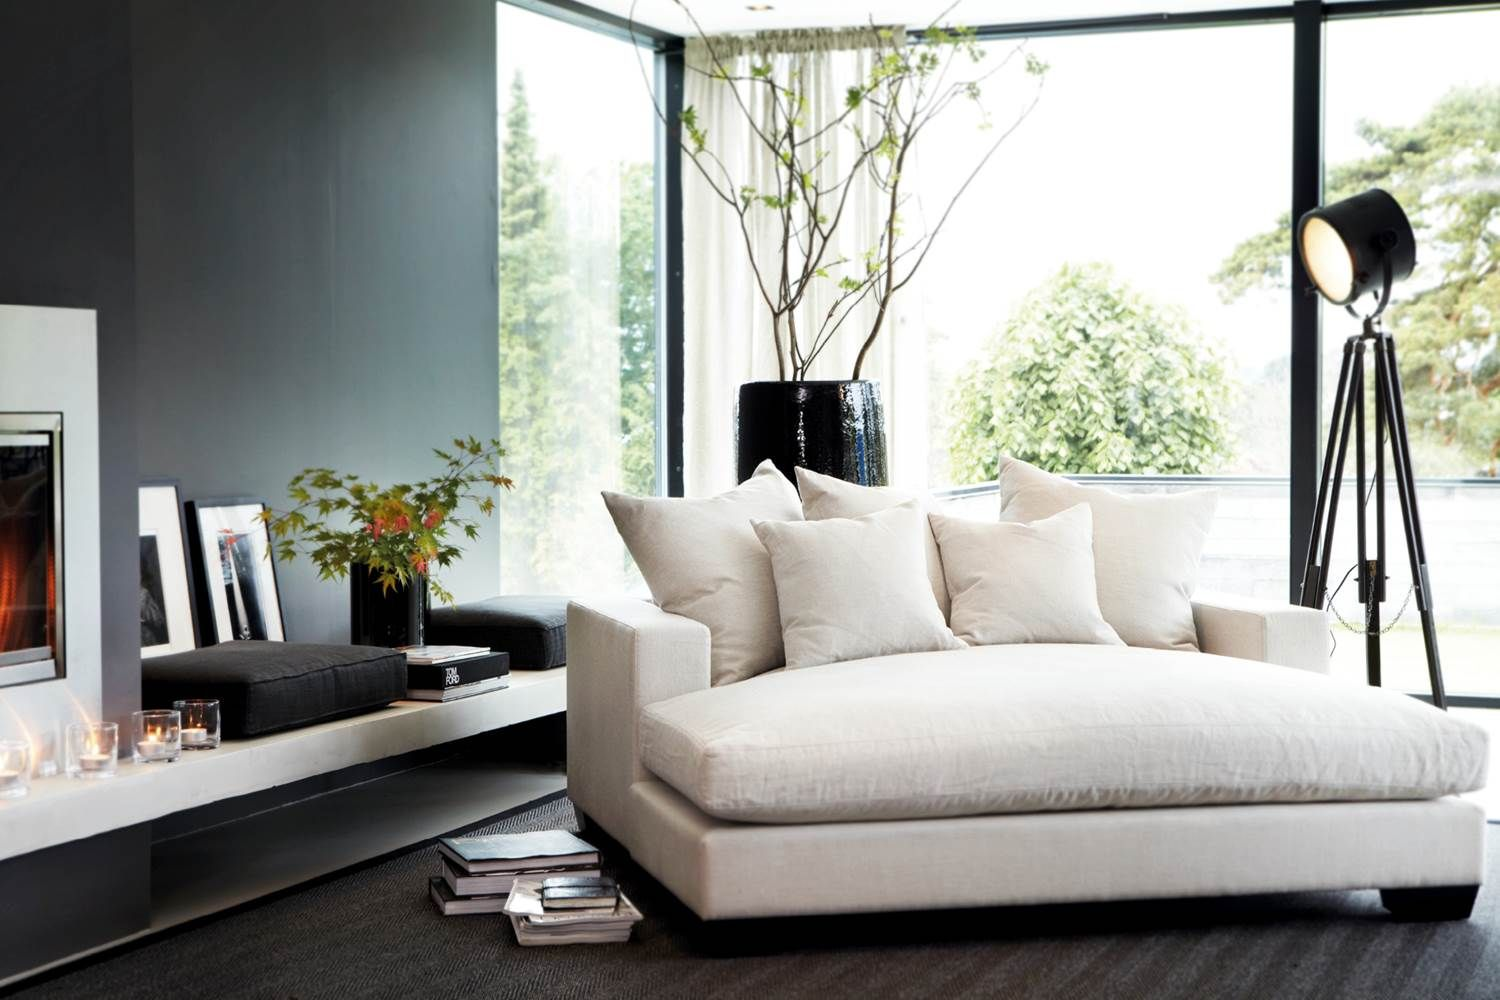 White Daybed By Slettvoll Maybe When The Kids Move Out